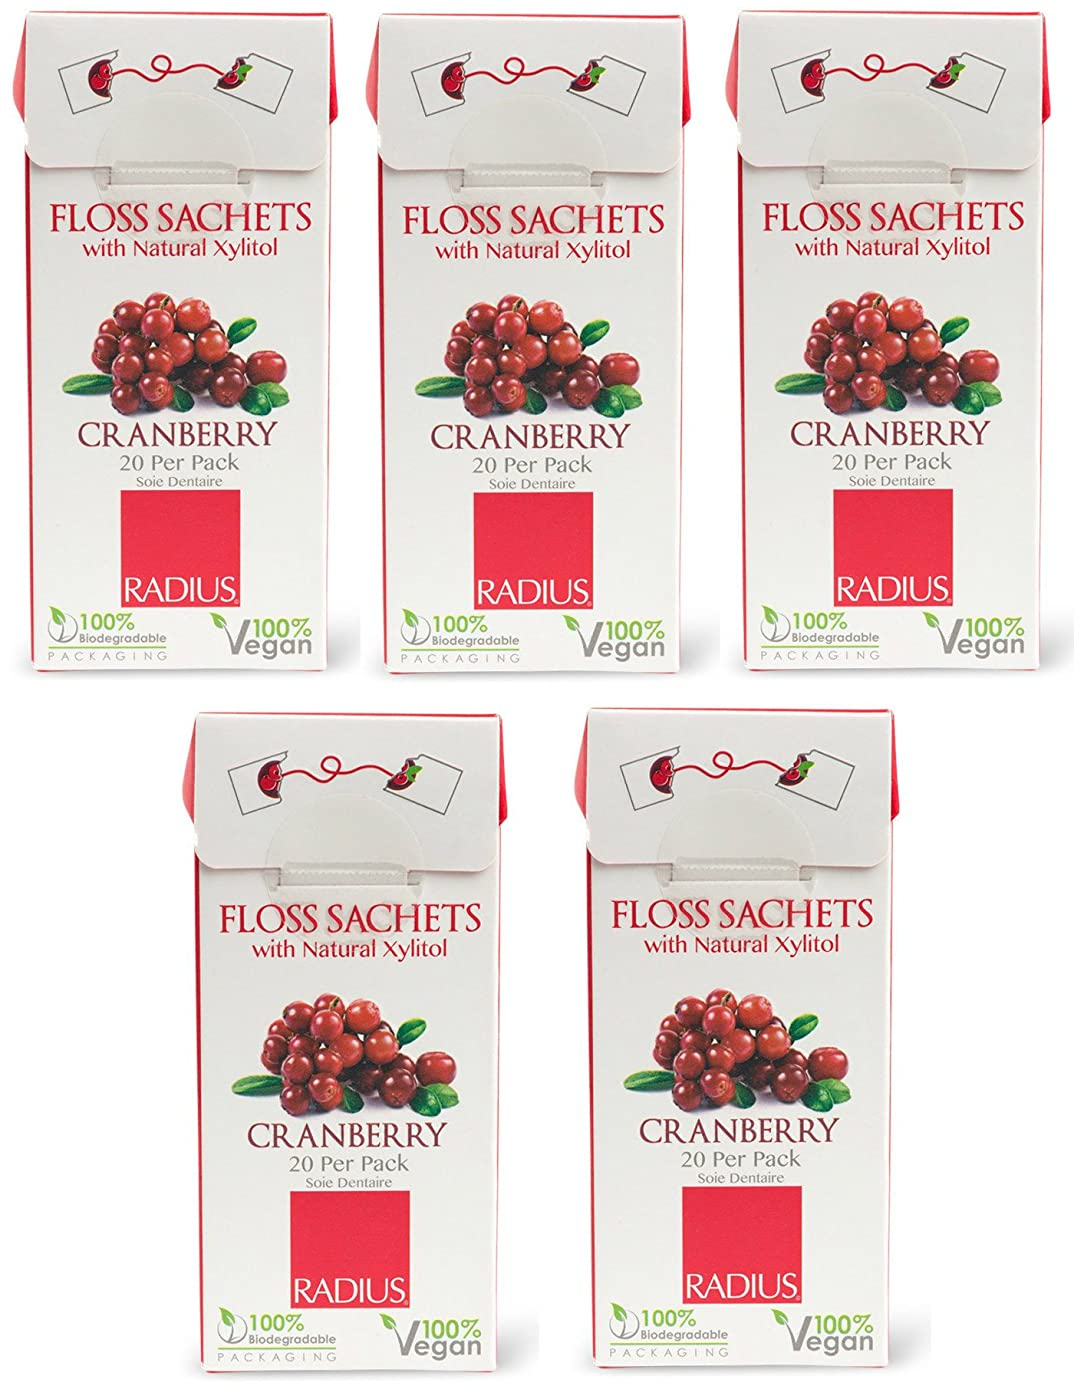 Radius Vegan Xylitol Floss Sachets Cranberry (Pack of 5), 20 sachets per pack